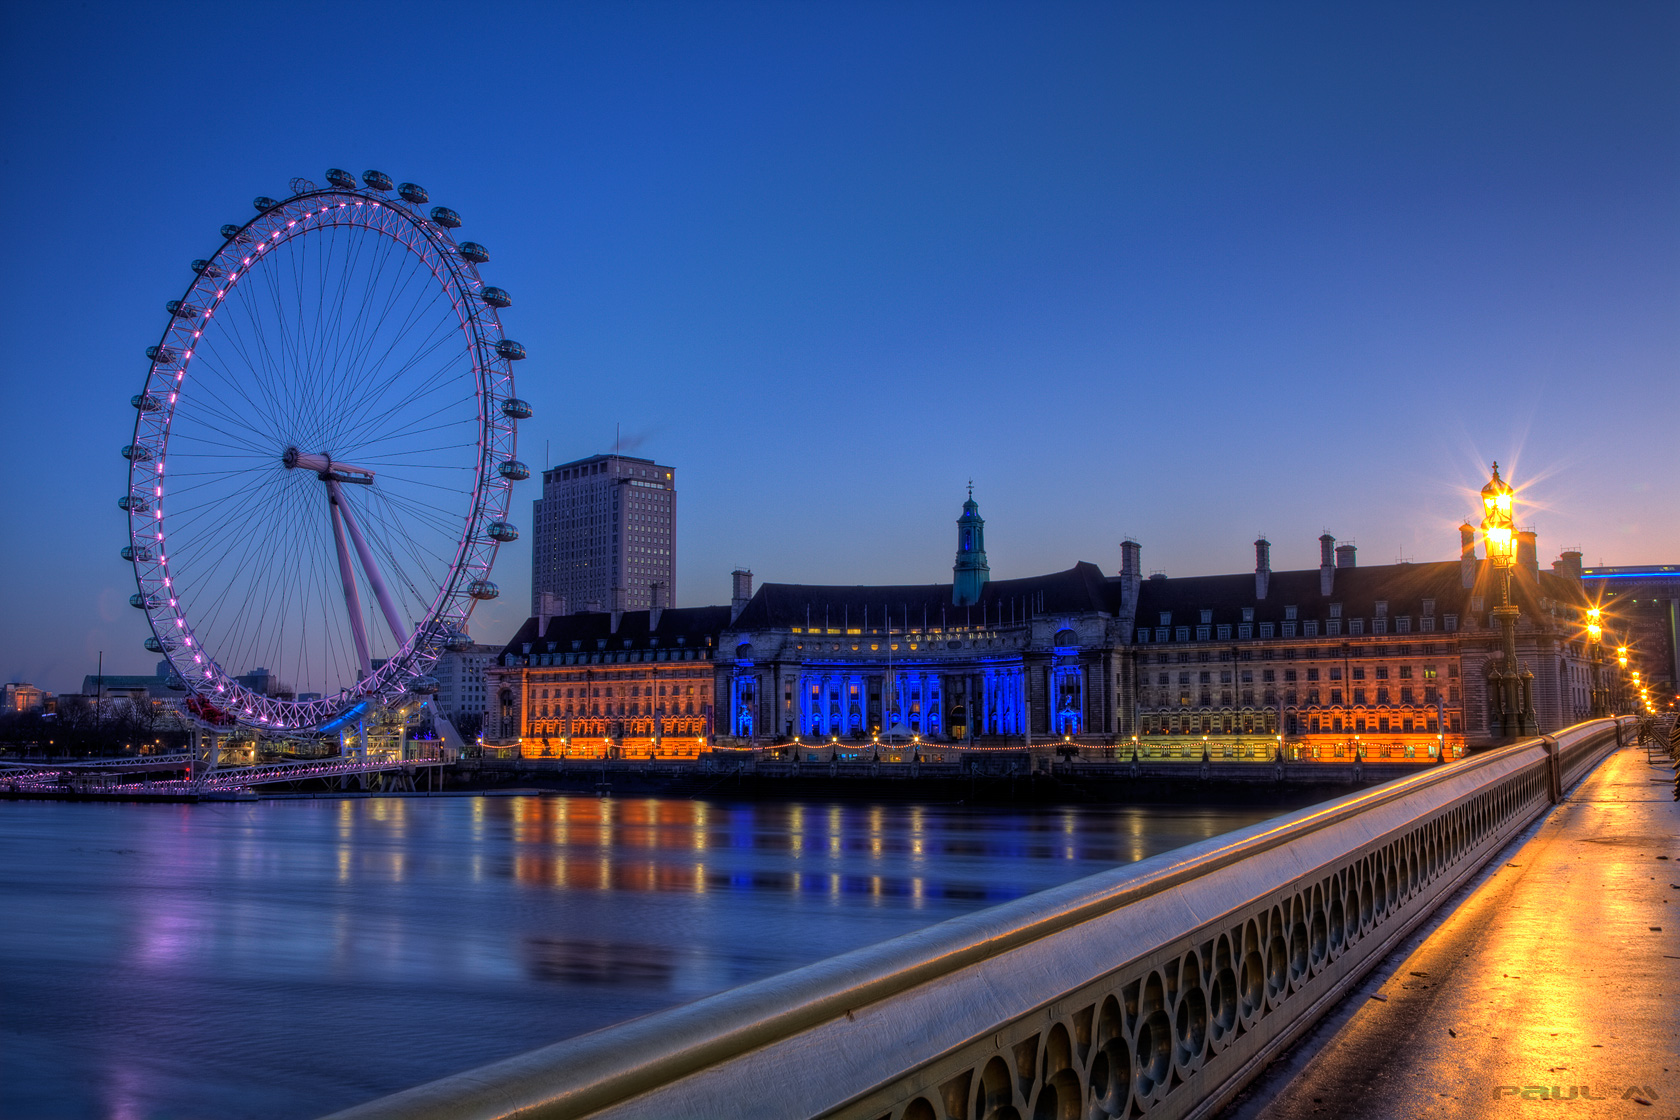 london images london eye hd wallpaper and background photos (25177008)